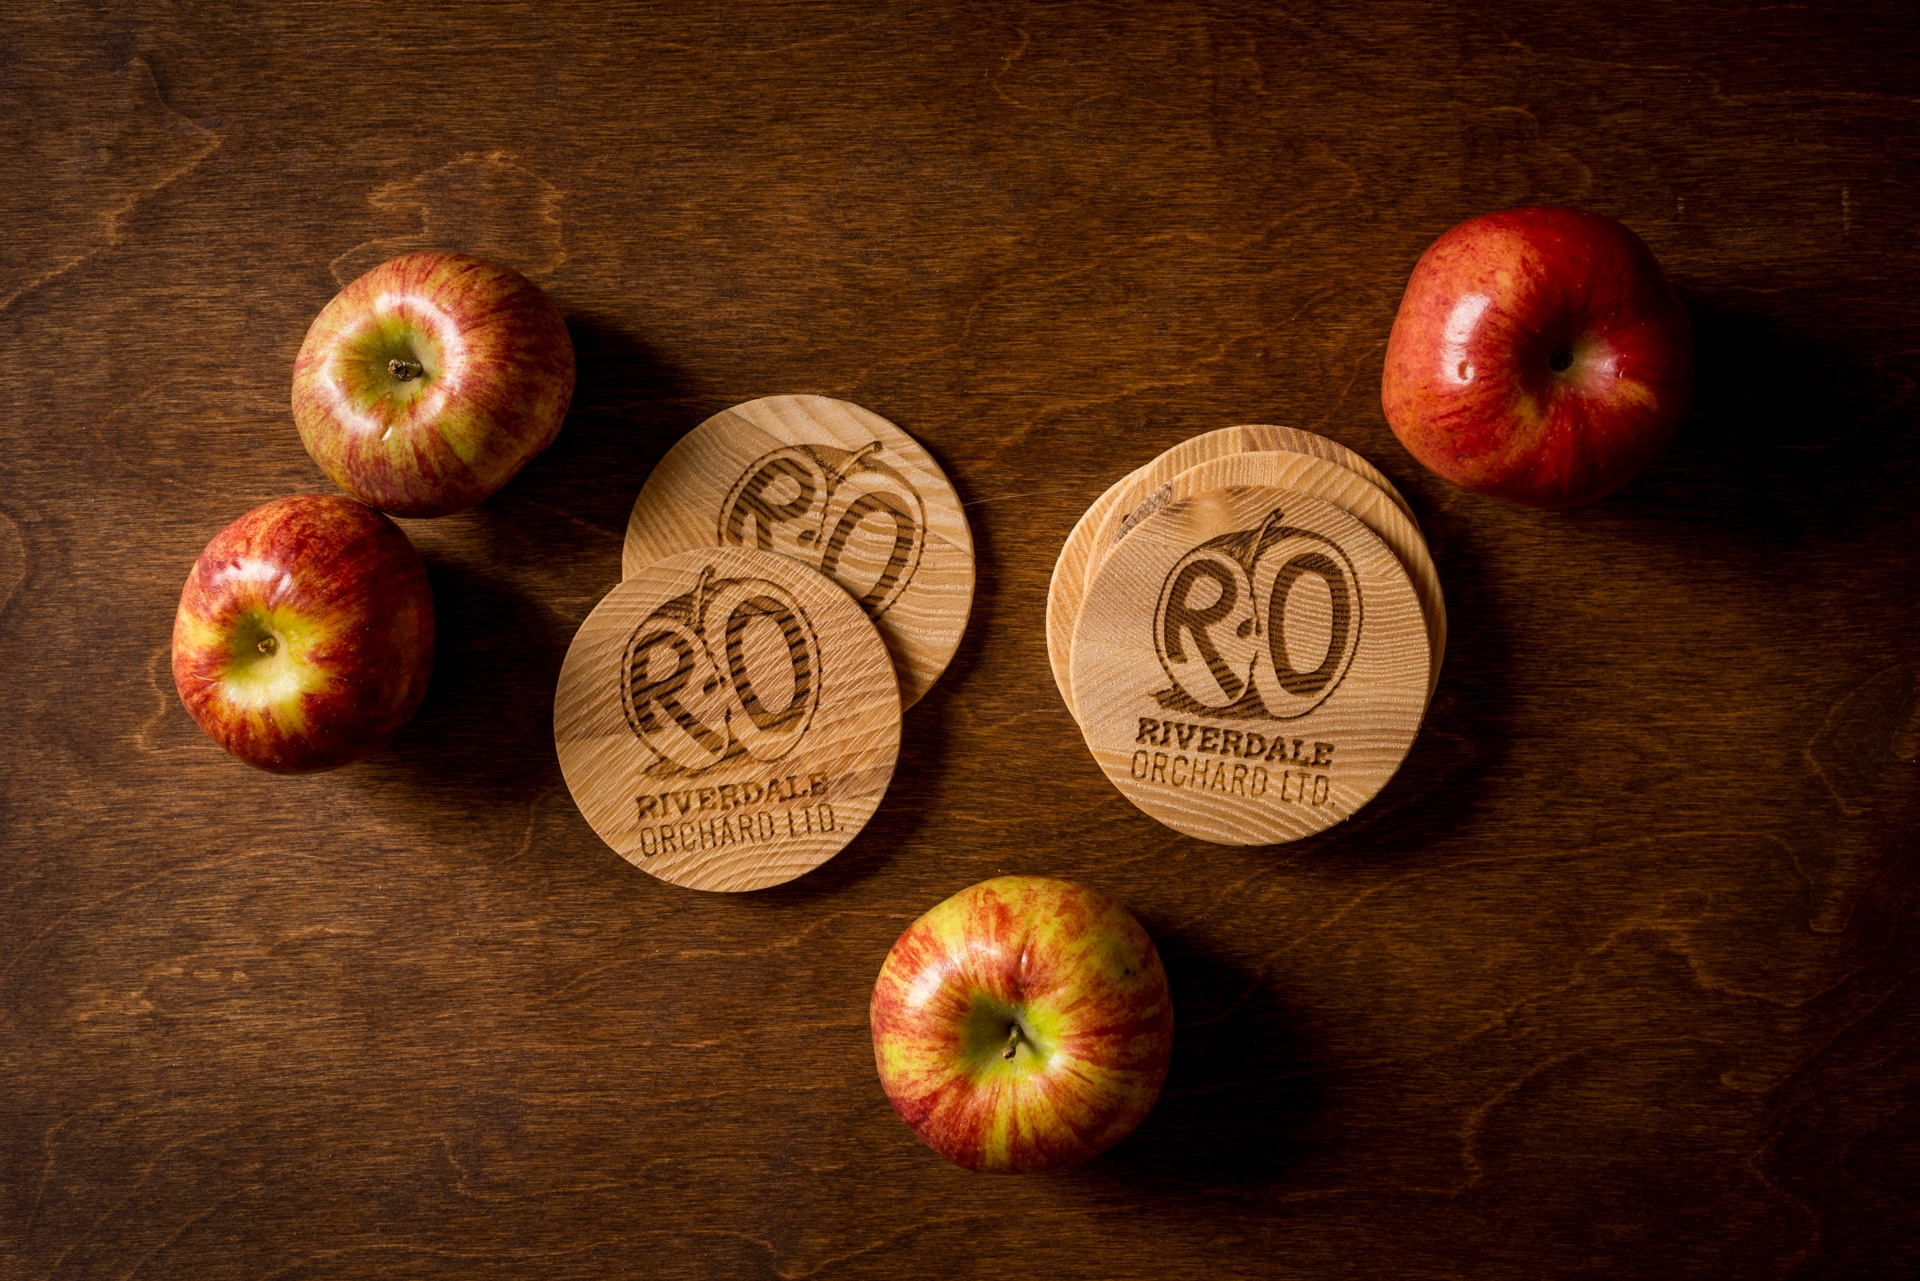 Riverdale Orchard Cidery